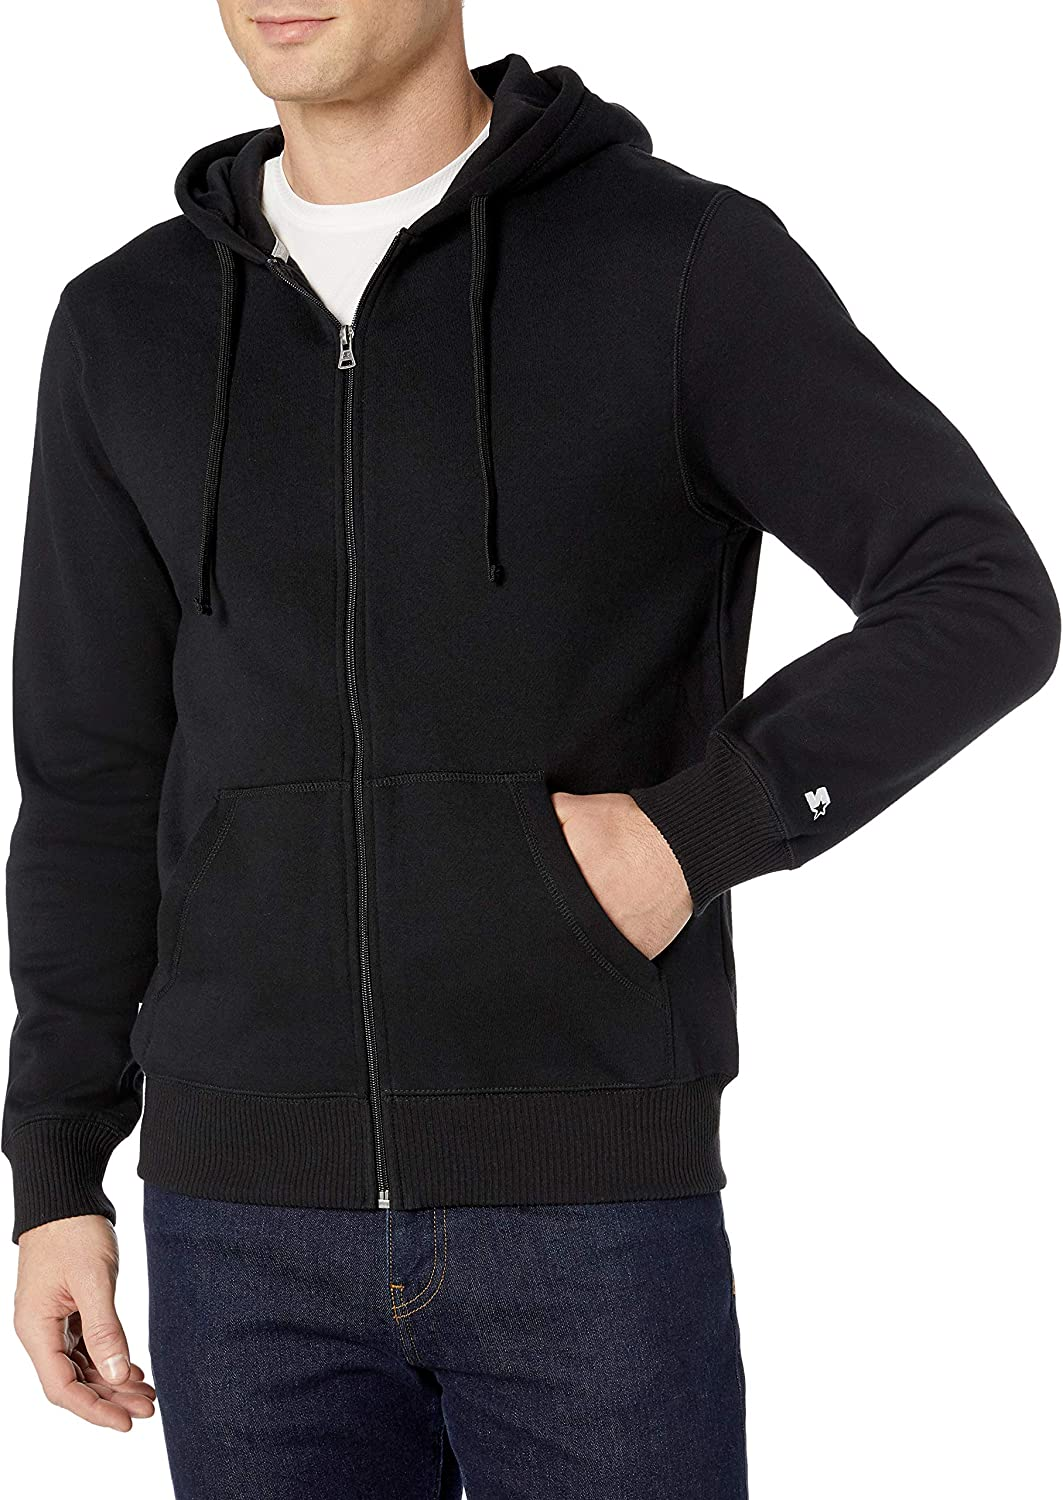 Starter Men's Zip-Up Hoodie, Amazon Exclusive